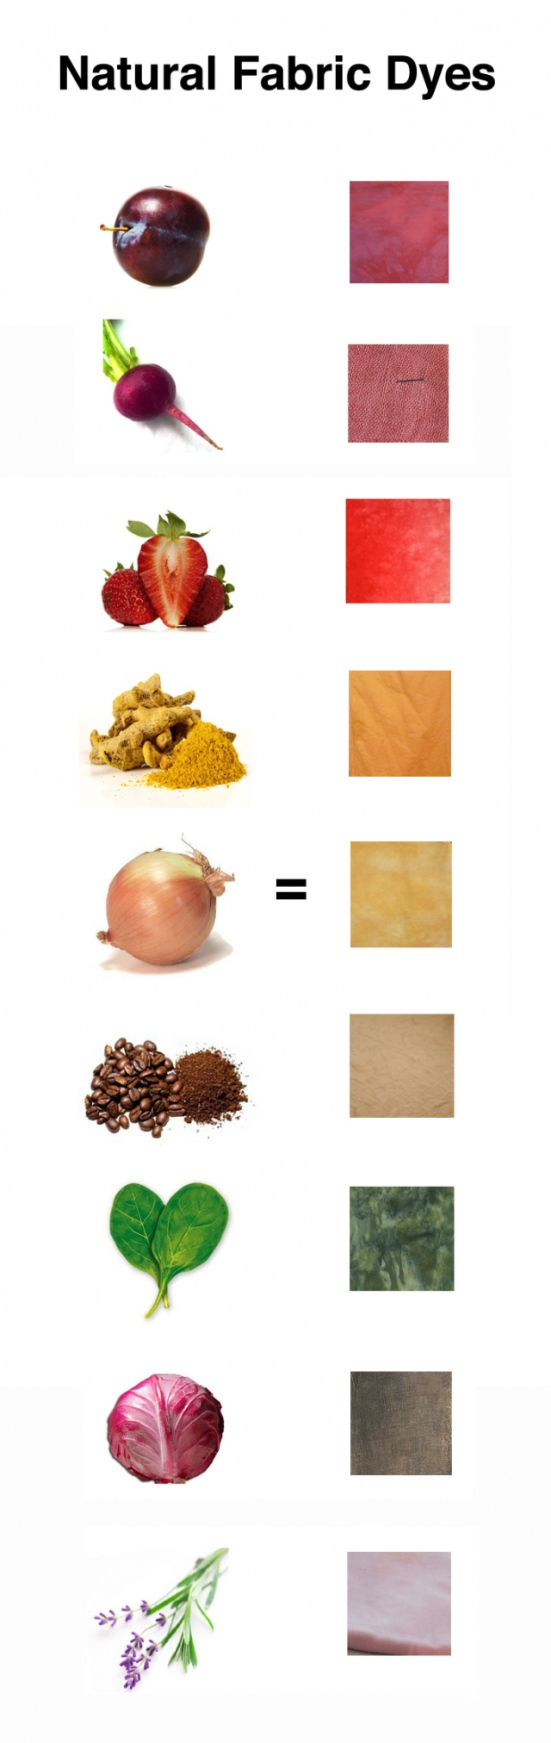 Natural Fabric Dyes DIY... Currently researching how to dye fabrics.